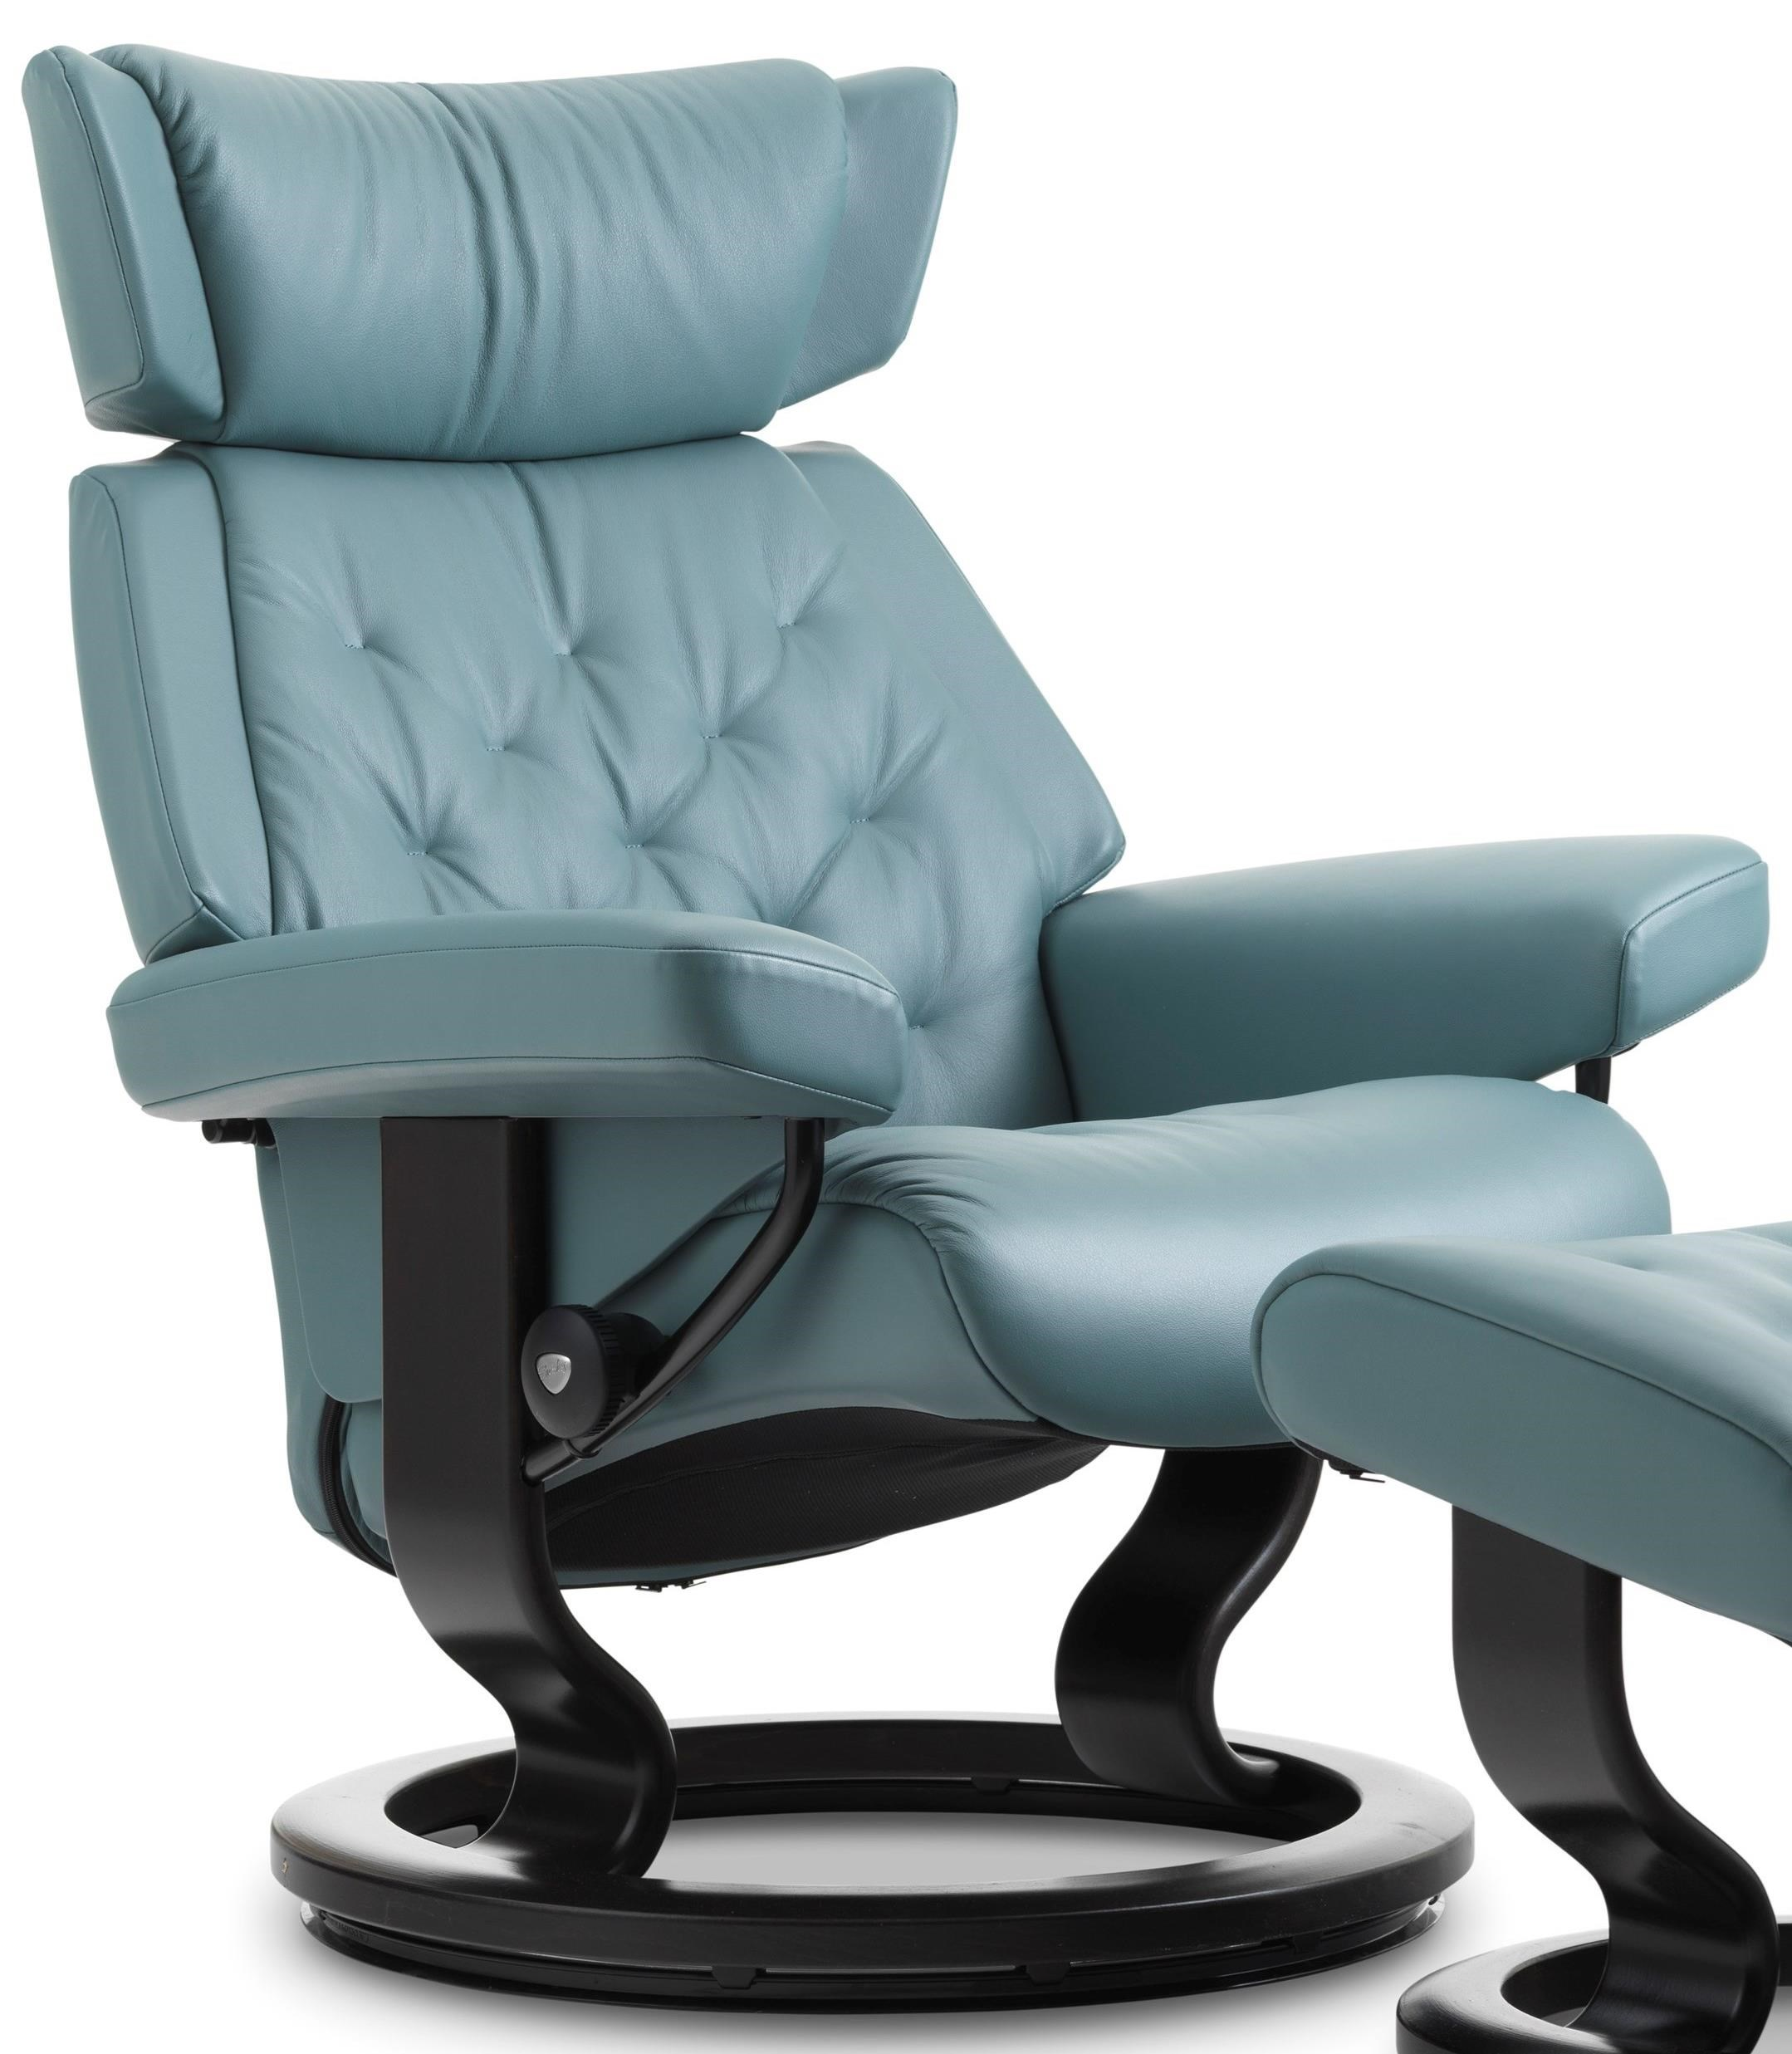 Modern Recliner Chair Skyline Medium Reclining Chair With Classic Base By Stressless At Dunk Bright Furniture